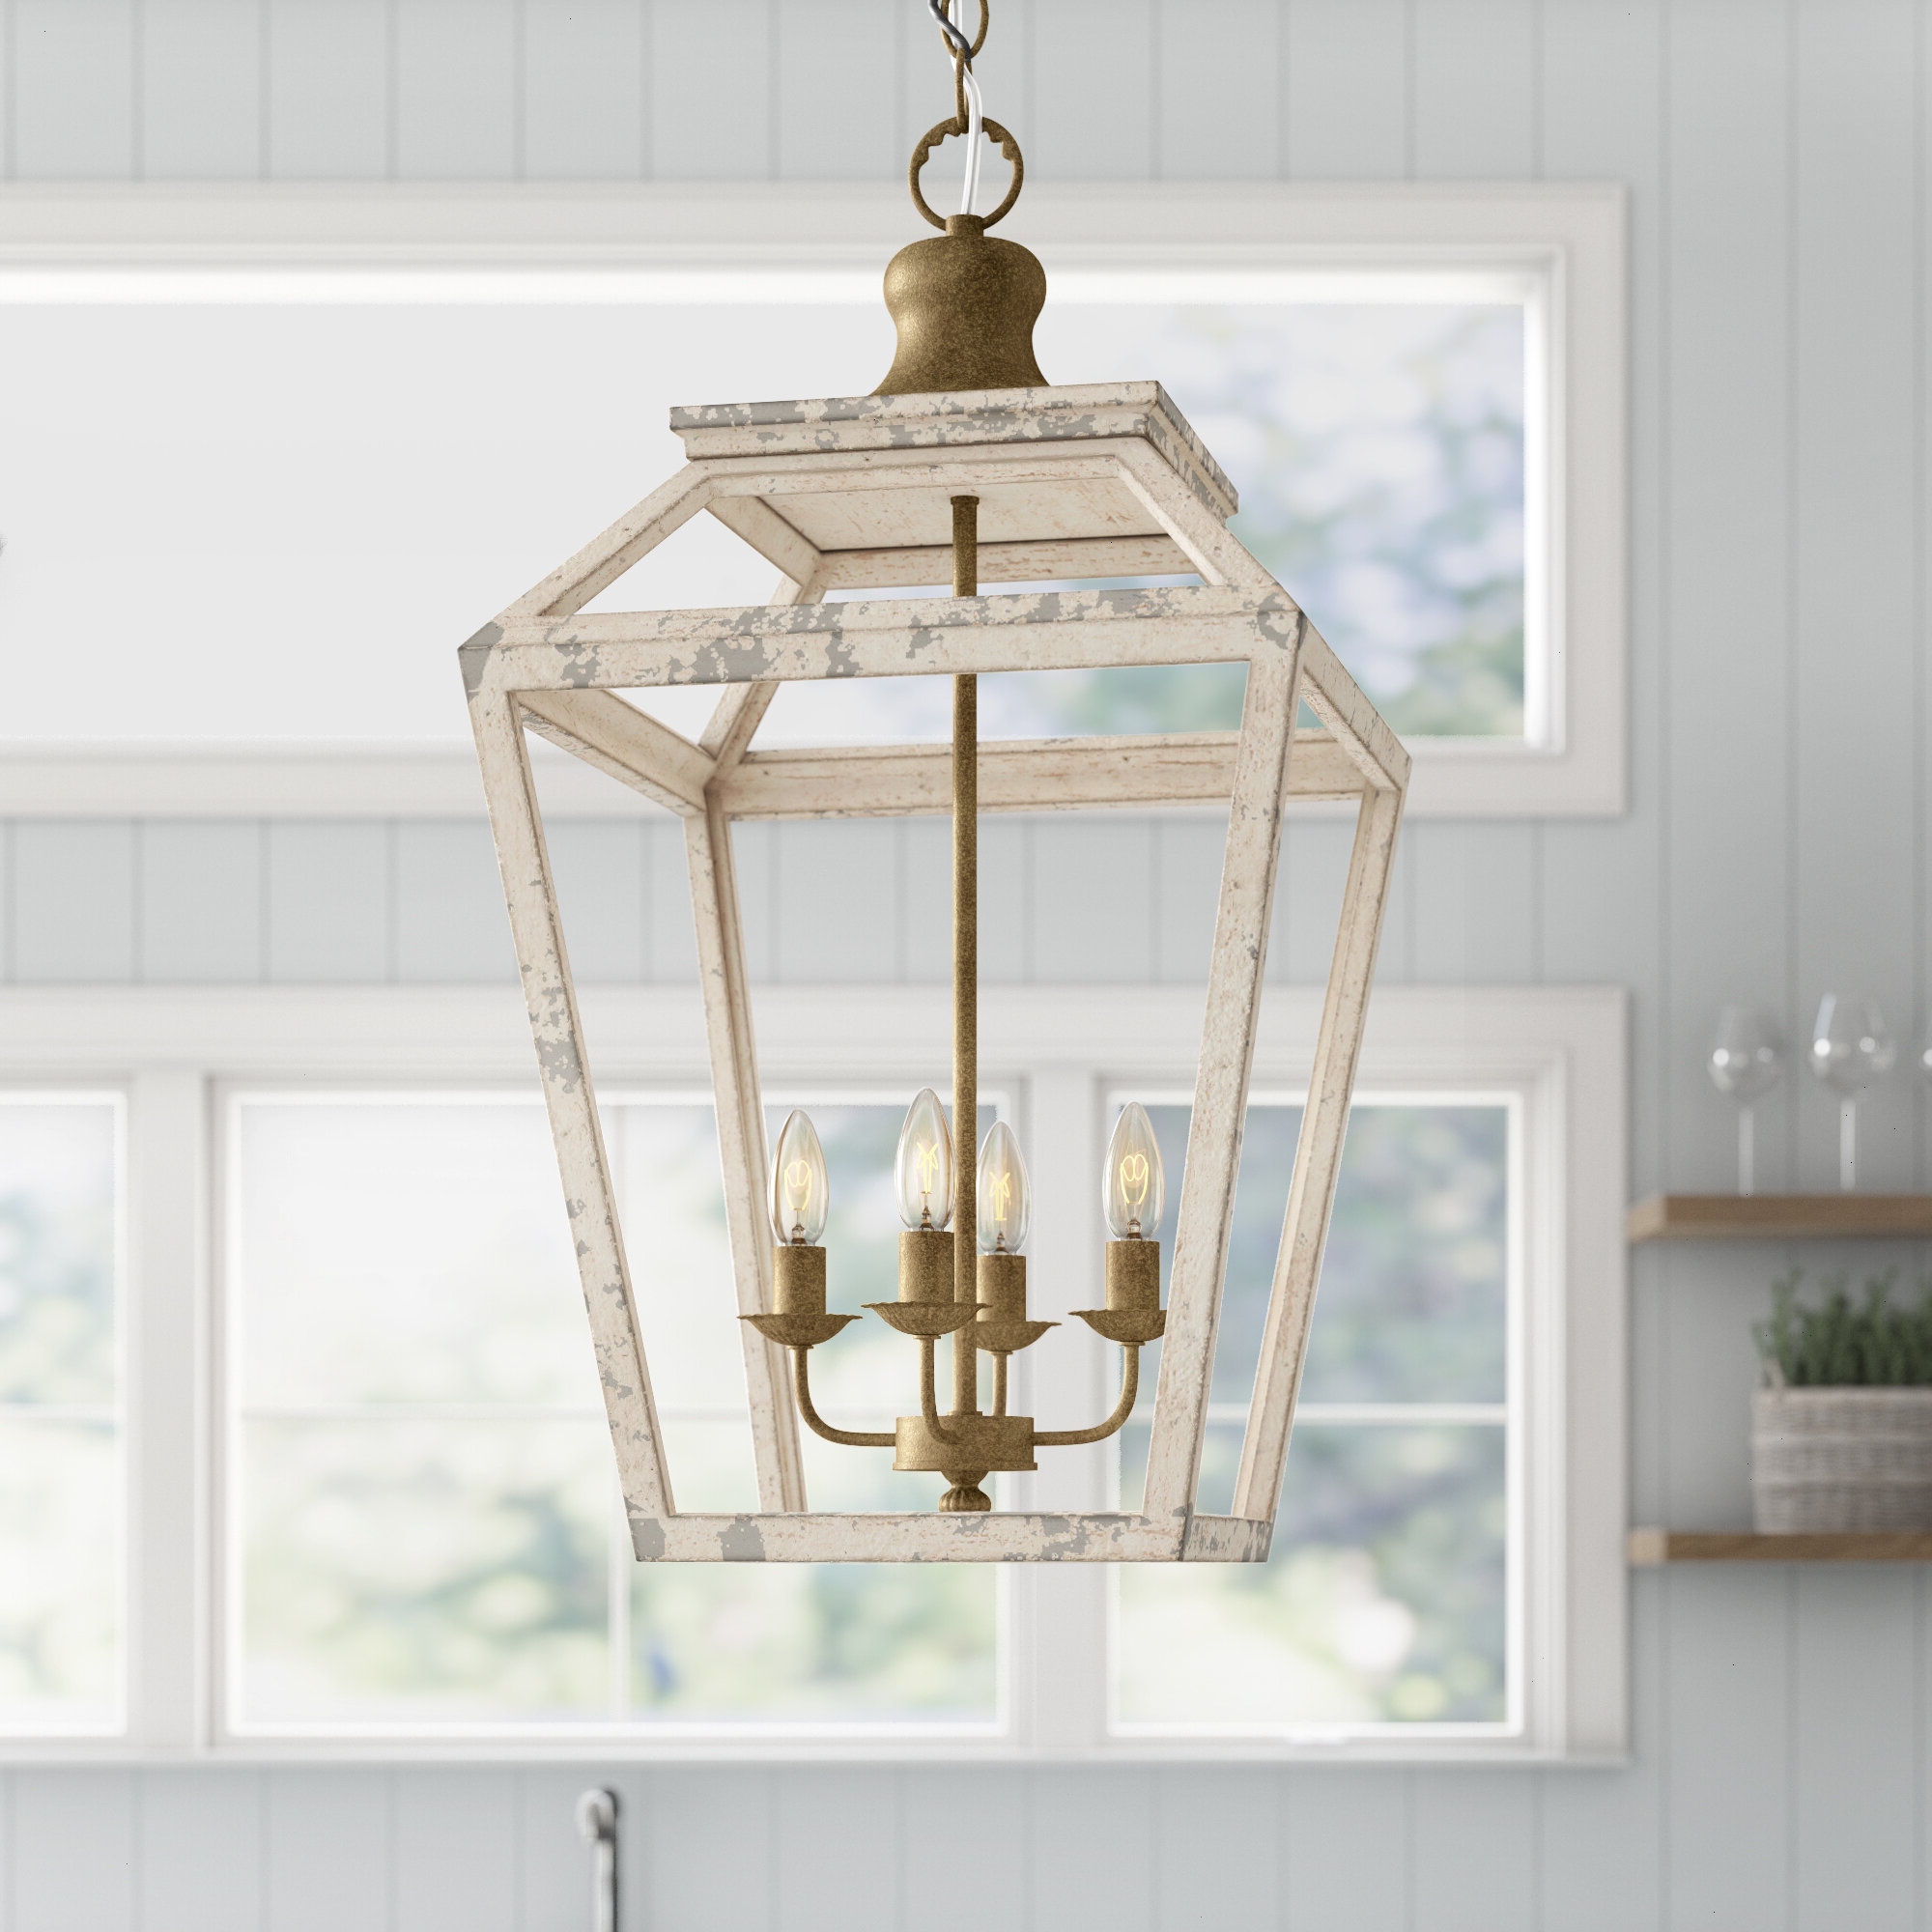 Delon 1-Light Lantern Geometric Pendants for 2019 Baugher 4-Light Lantern Geometric Pendant